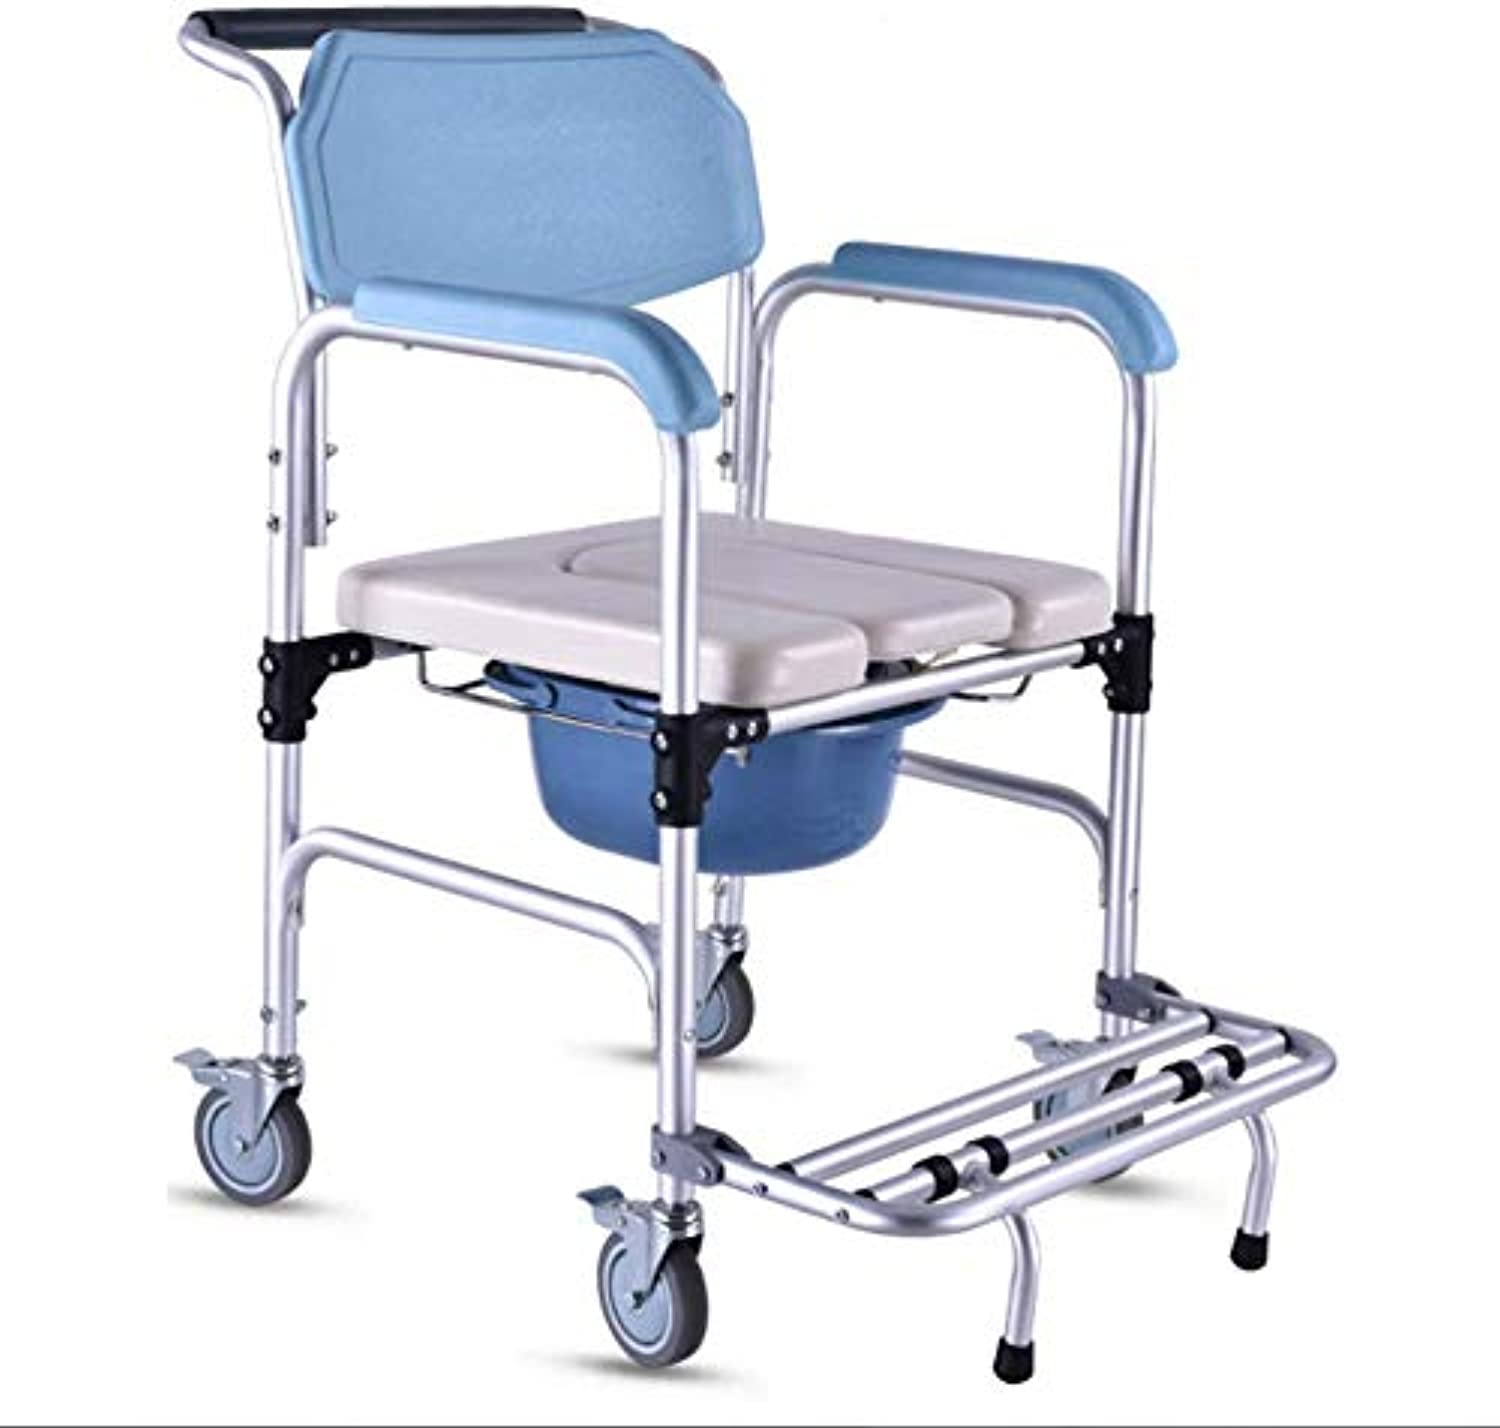 Shengshiyujia Kommode Chair for Toilet with Wheels & Pedal, Heavy Duty 350 lbs, Portable Bidet Chair Shower Bath Chair for Elder Disabled Disabled People Pregnant damen (Light Blau)